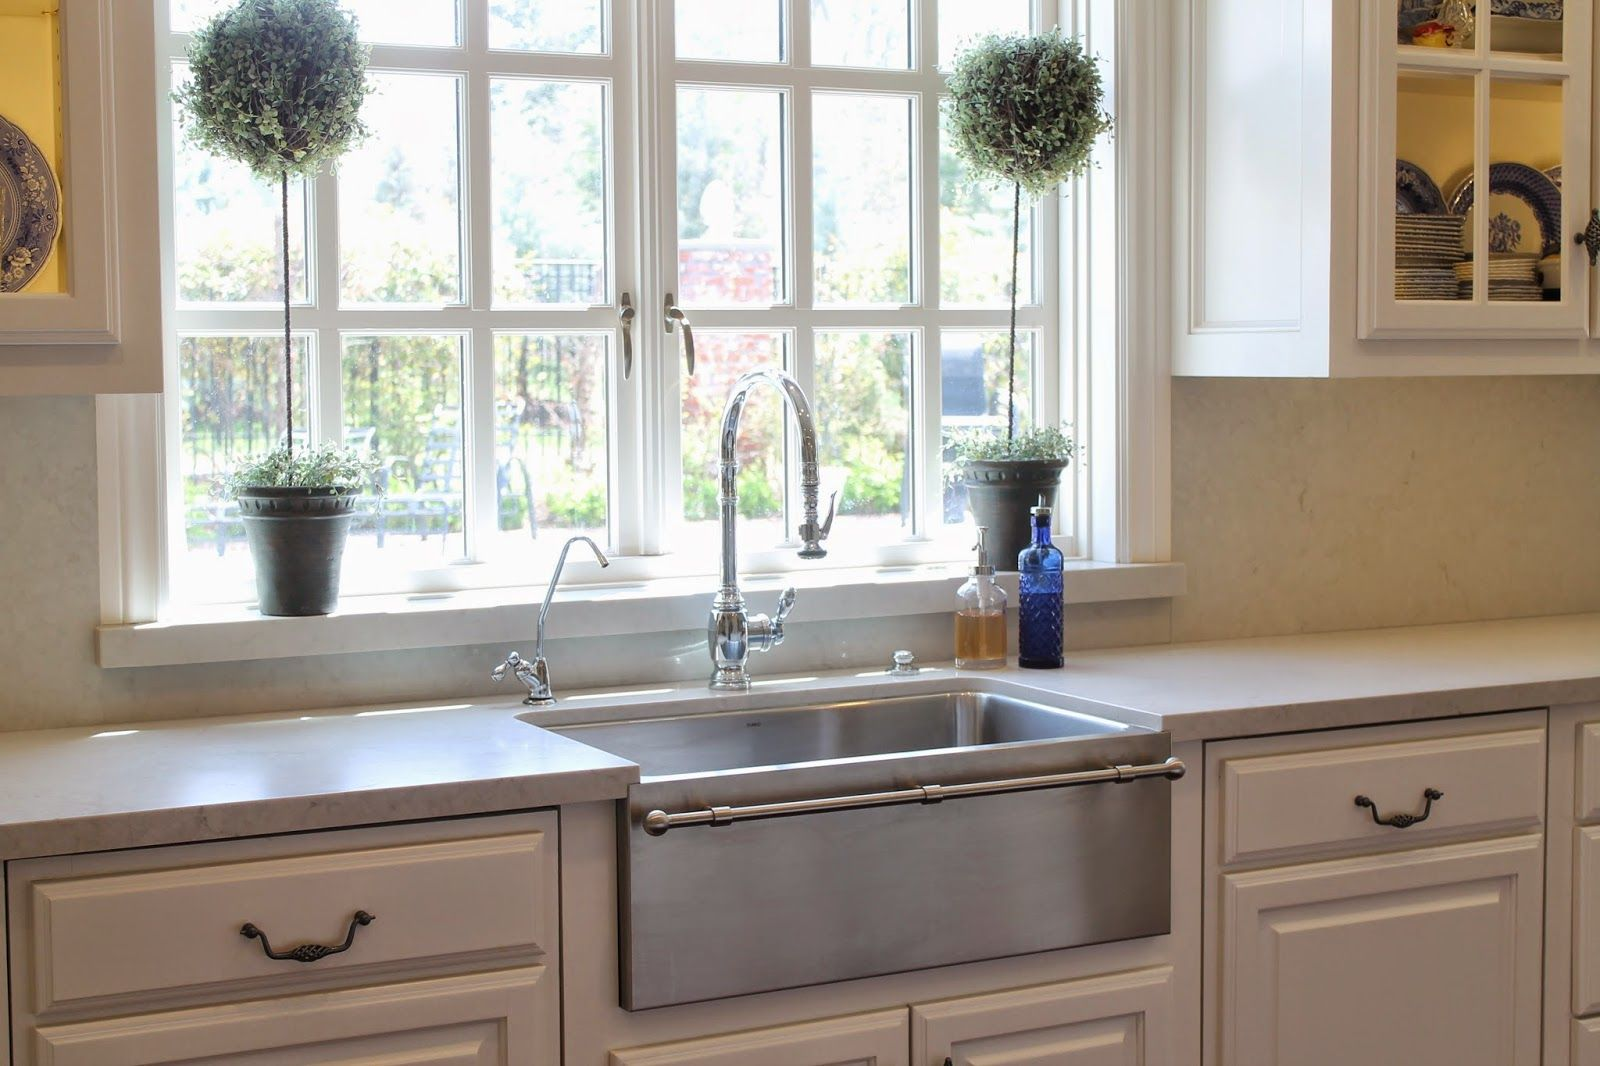 For her kitchen remodel, Emily of Eleven Gables chose a contemporary take on the traditional enamel farmhouse sink: a Blanco Magnum in stainless steel with a built-in towel bar.